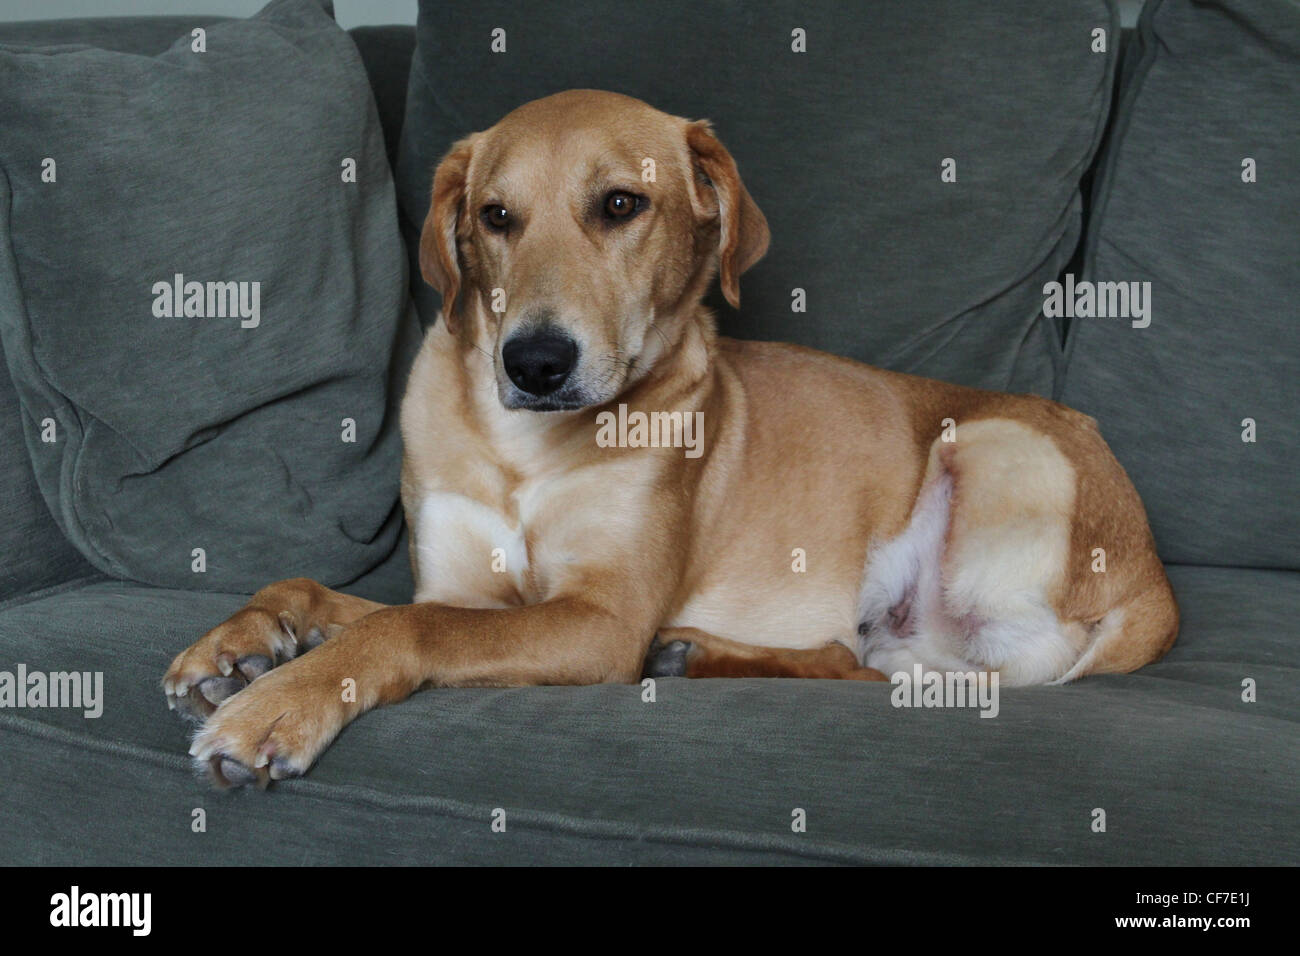 ein netter hund auf einer couch stockfoto bild 43805262 alamy. Black Bedroom Furniture Sets. Home Design Ideas